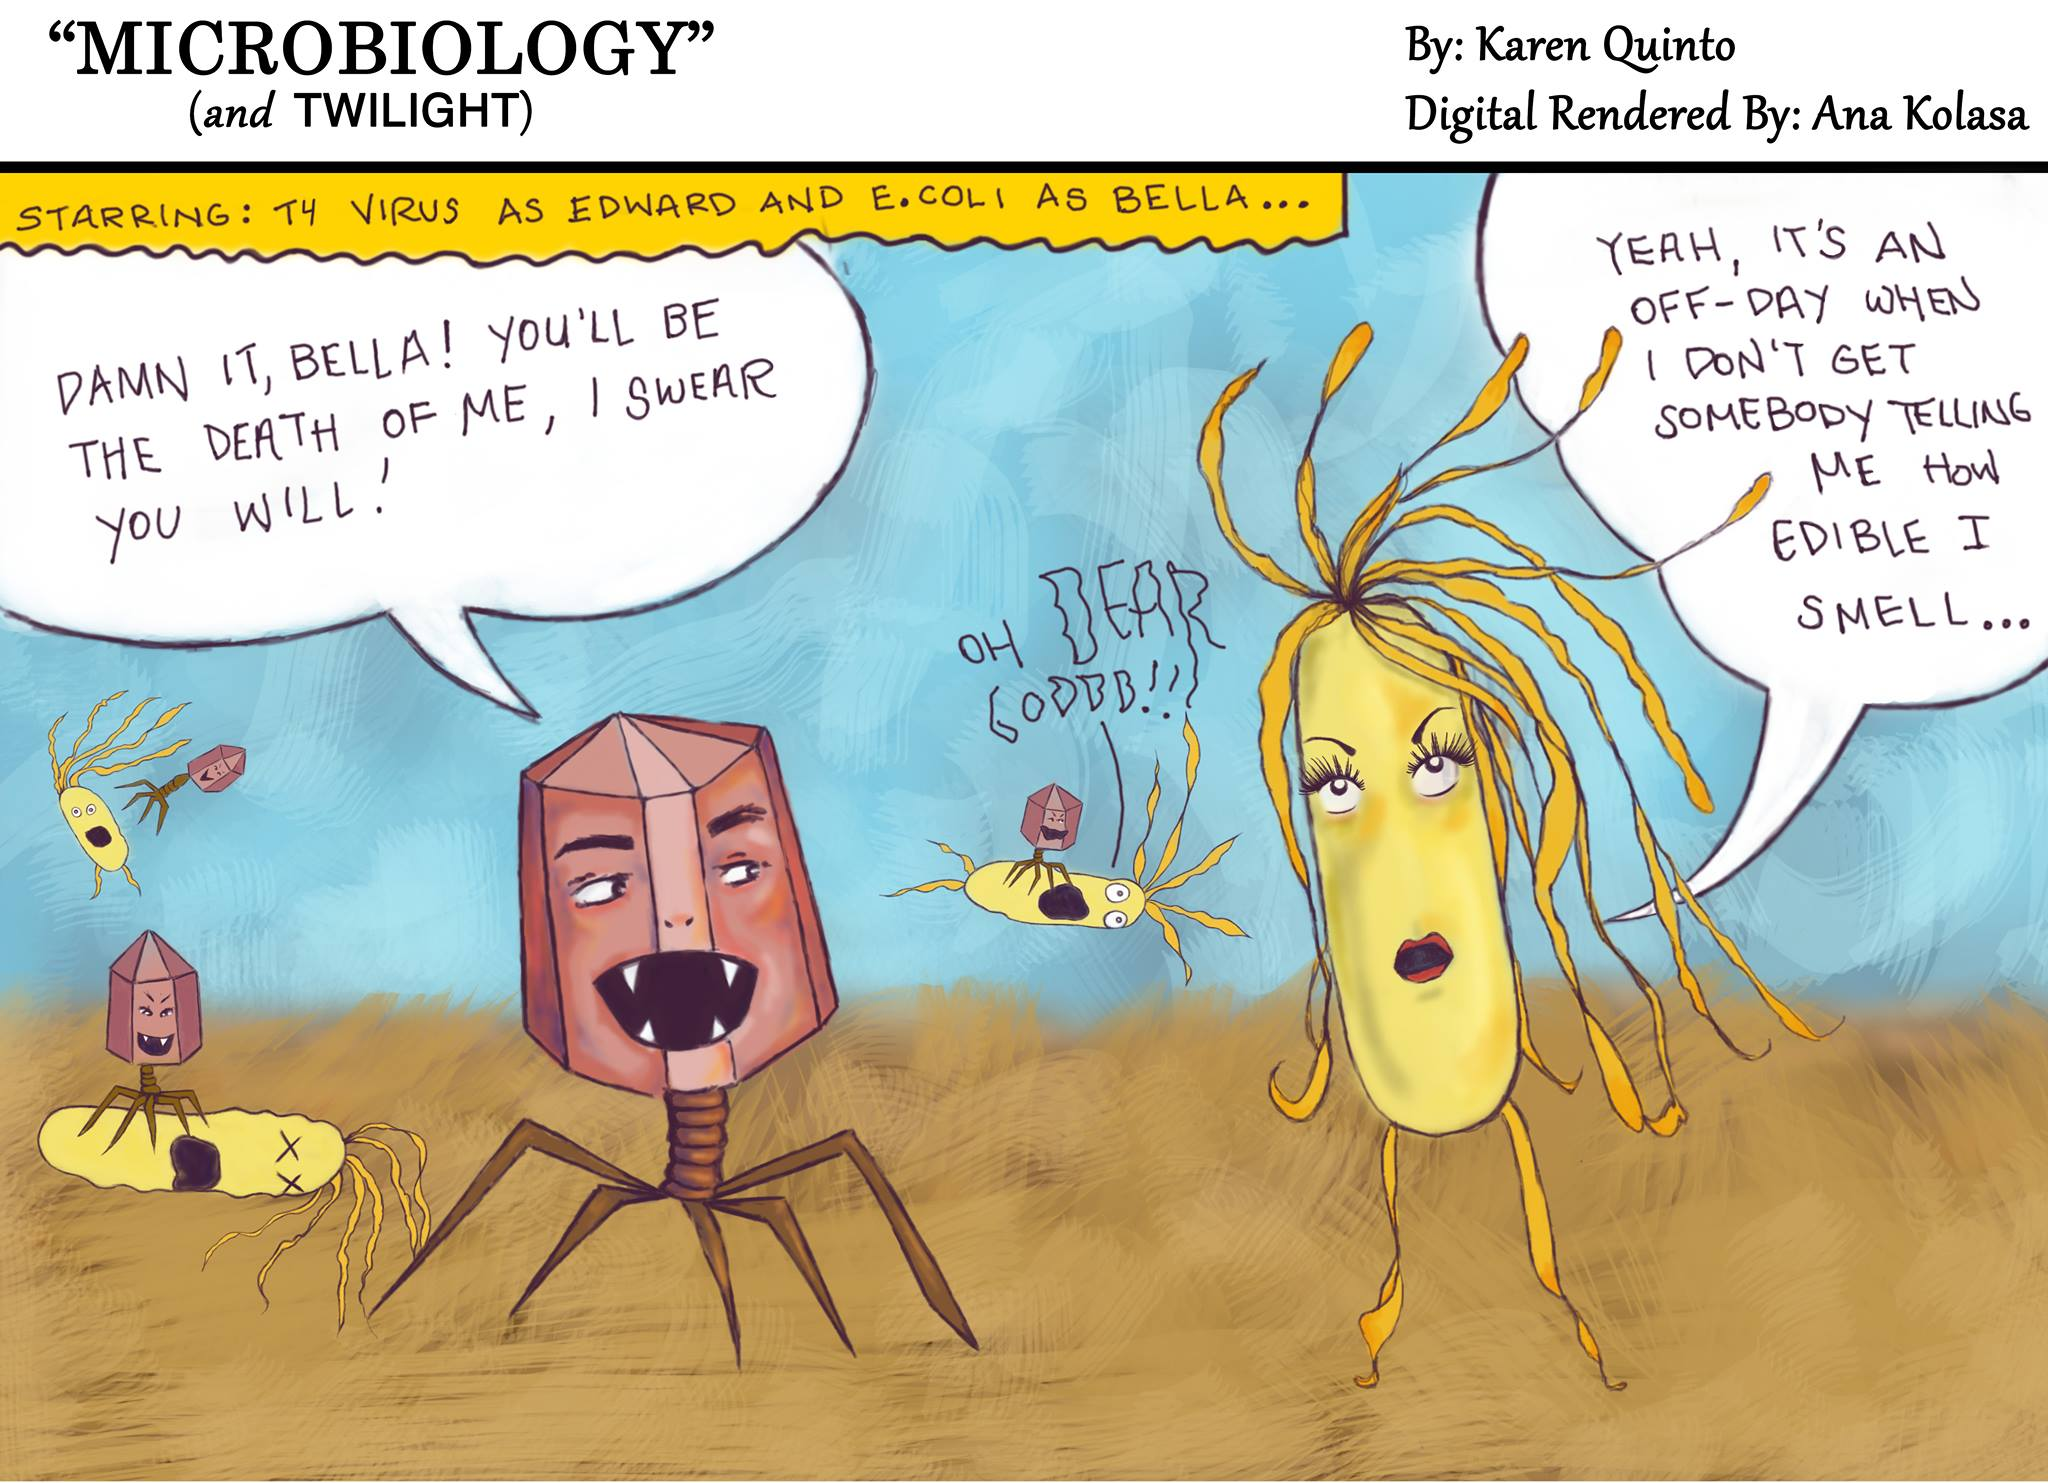 MICROBIOLOGY (and Twilight)